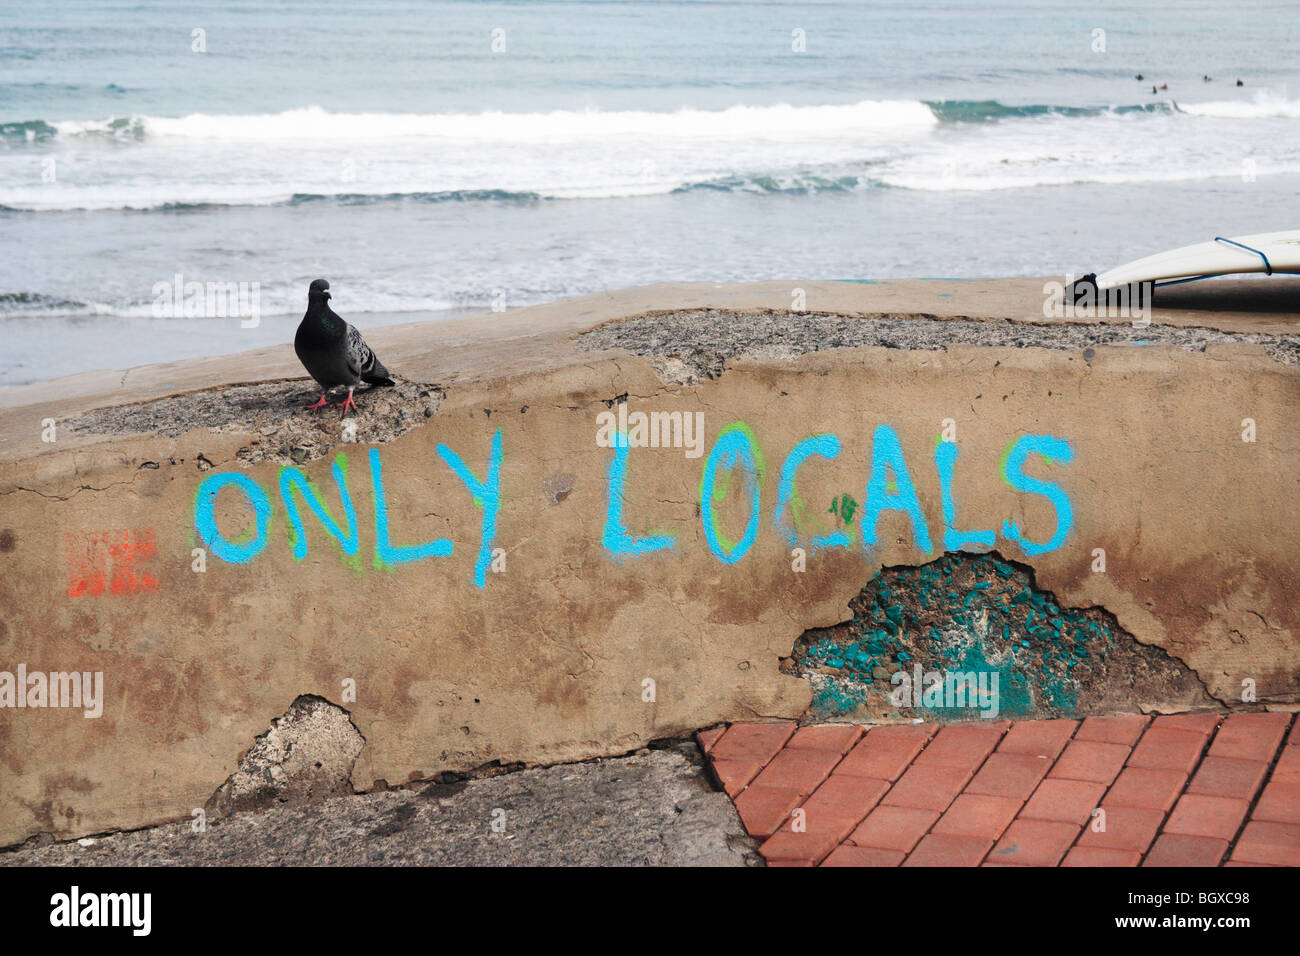 'Only Locals' painted on wall at surf break with pigeon sitting on wall - Stock Image